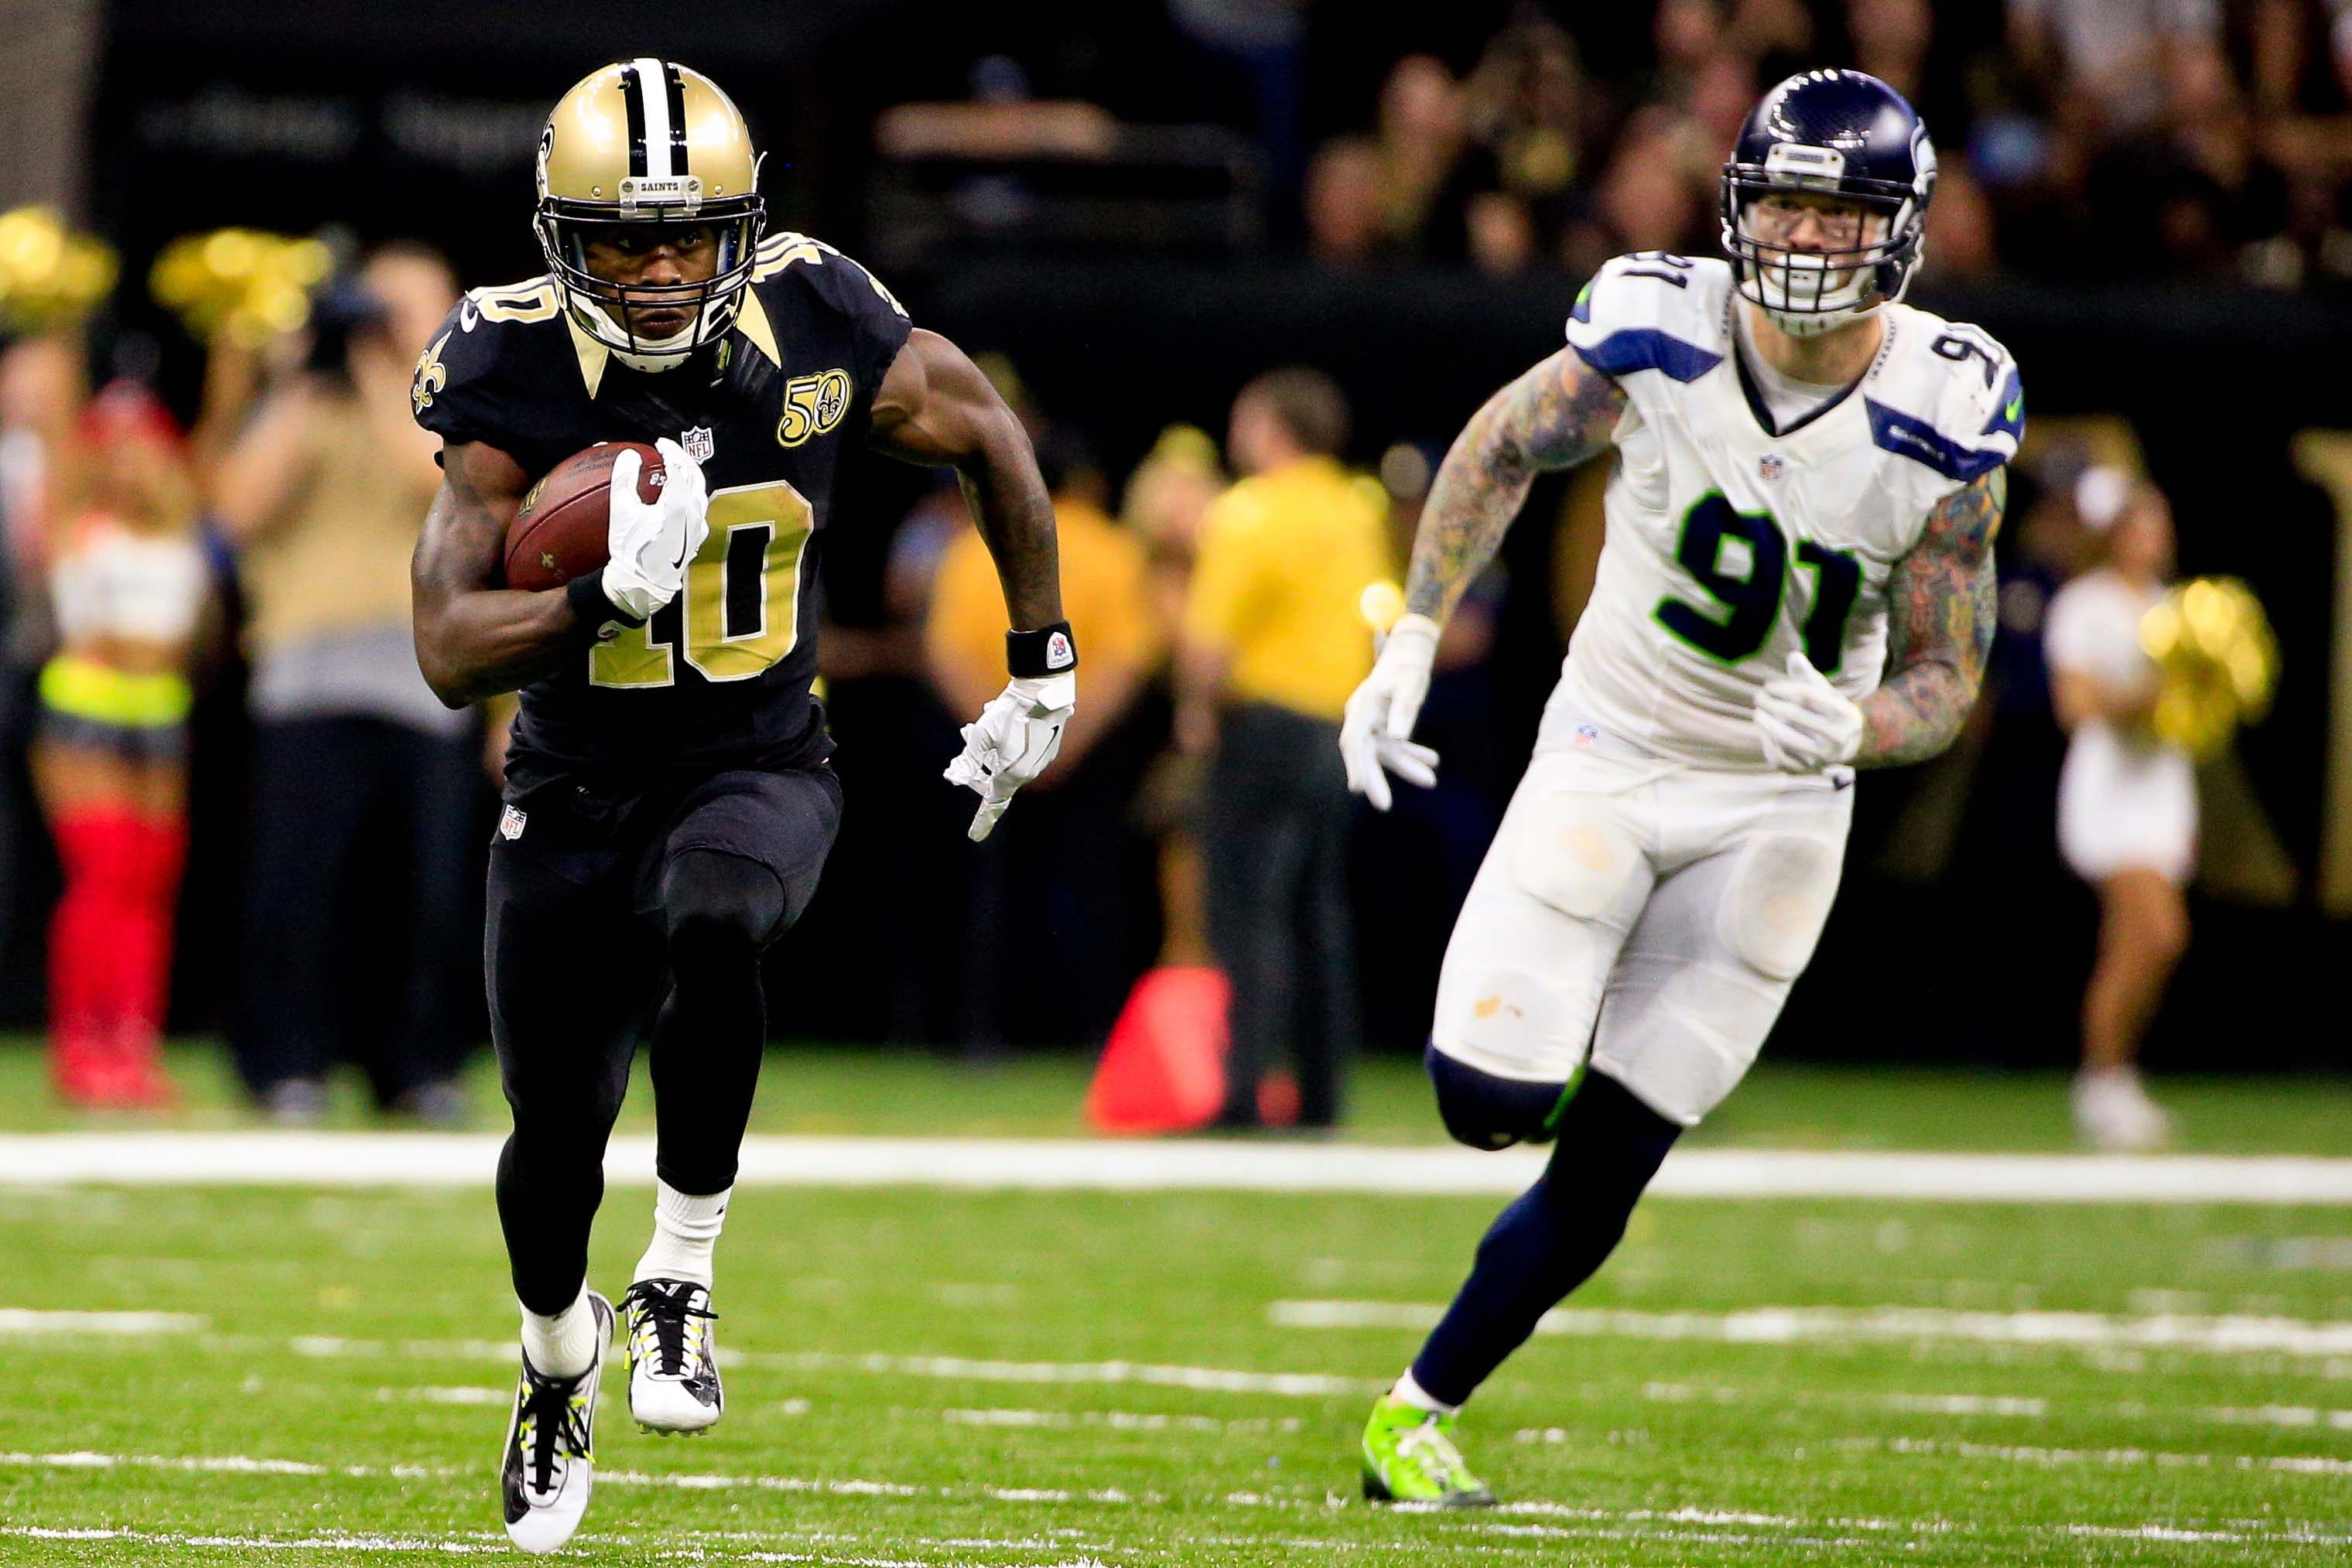 9643422-nfl-seattle-seahawks-at-new-orleans-saints